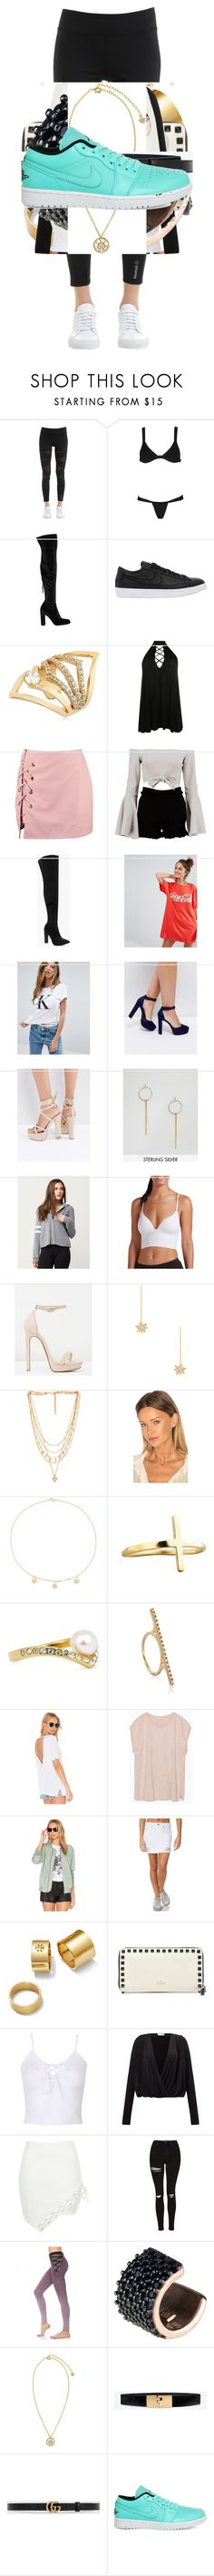 """Untitled #2099"" by bucketlistdiary on Polyvore featuring Reebok, Voi Sola, Steve Madden, NIKE, Maria Francesca Pepe, Boohoo, ASOS, Calvin Klein, Truffle and Full Tilt"